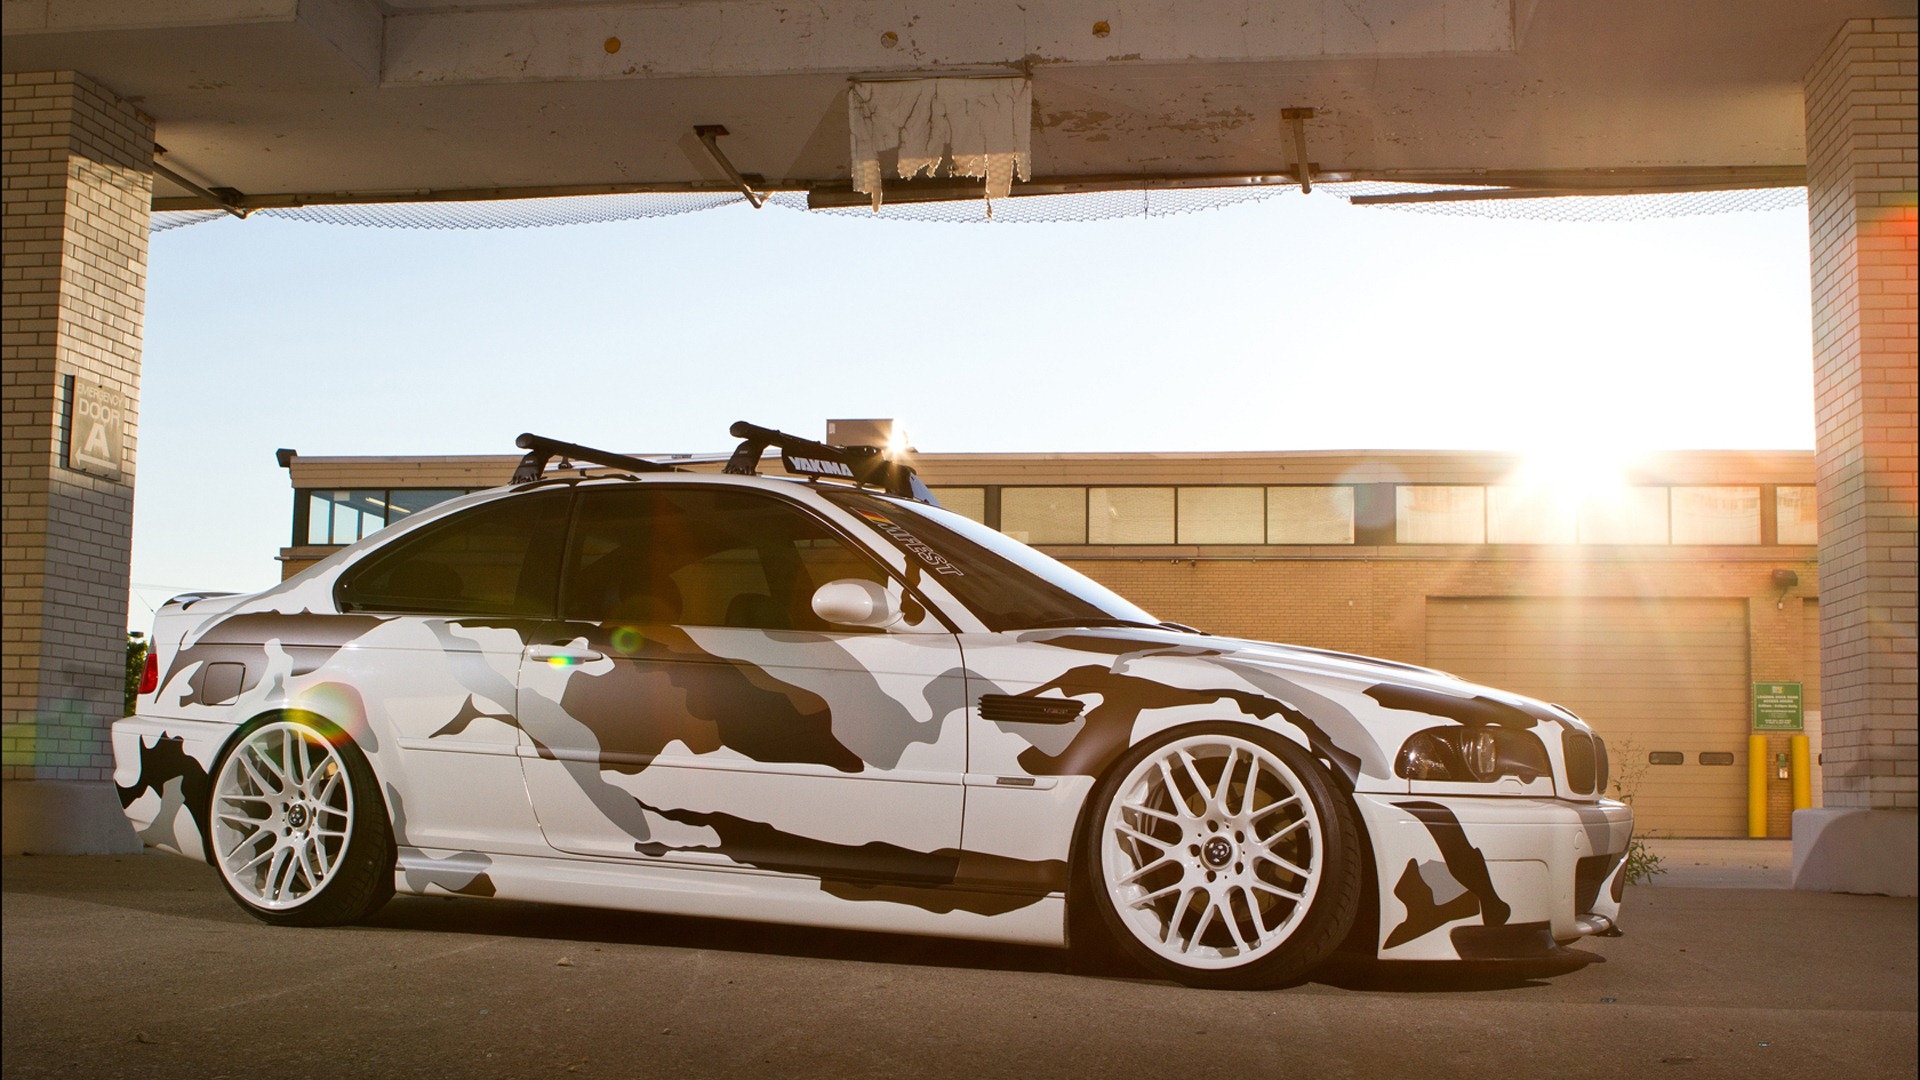 BMW-M-pic-from-www-hotszots-eu-wallpaper-wp3403434